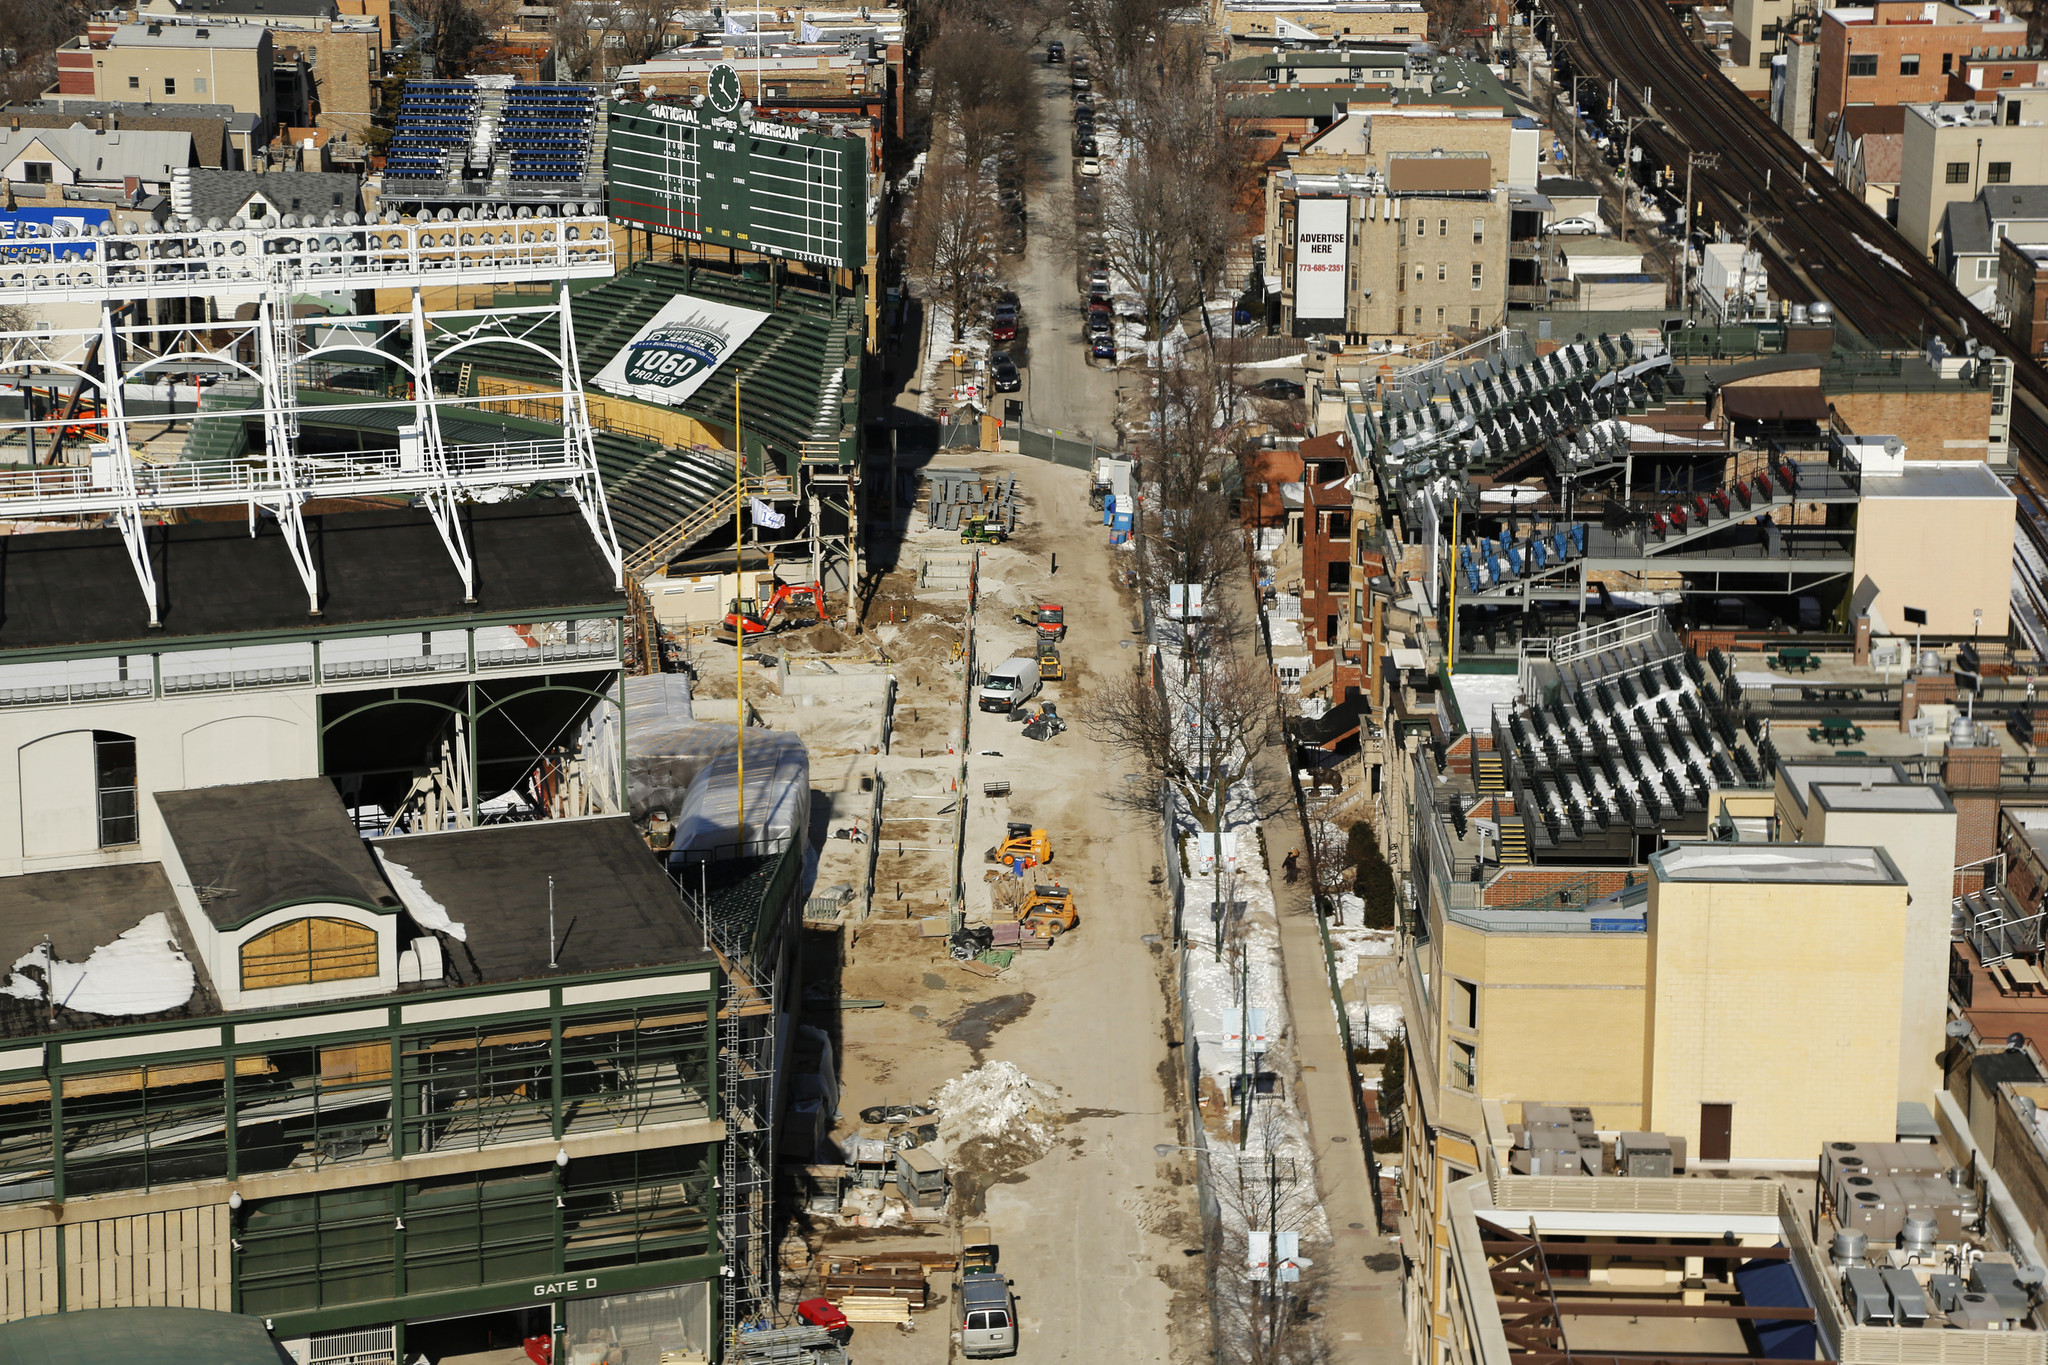 Chicago Cubs can keep building Wrigley signs, judge says